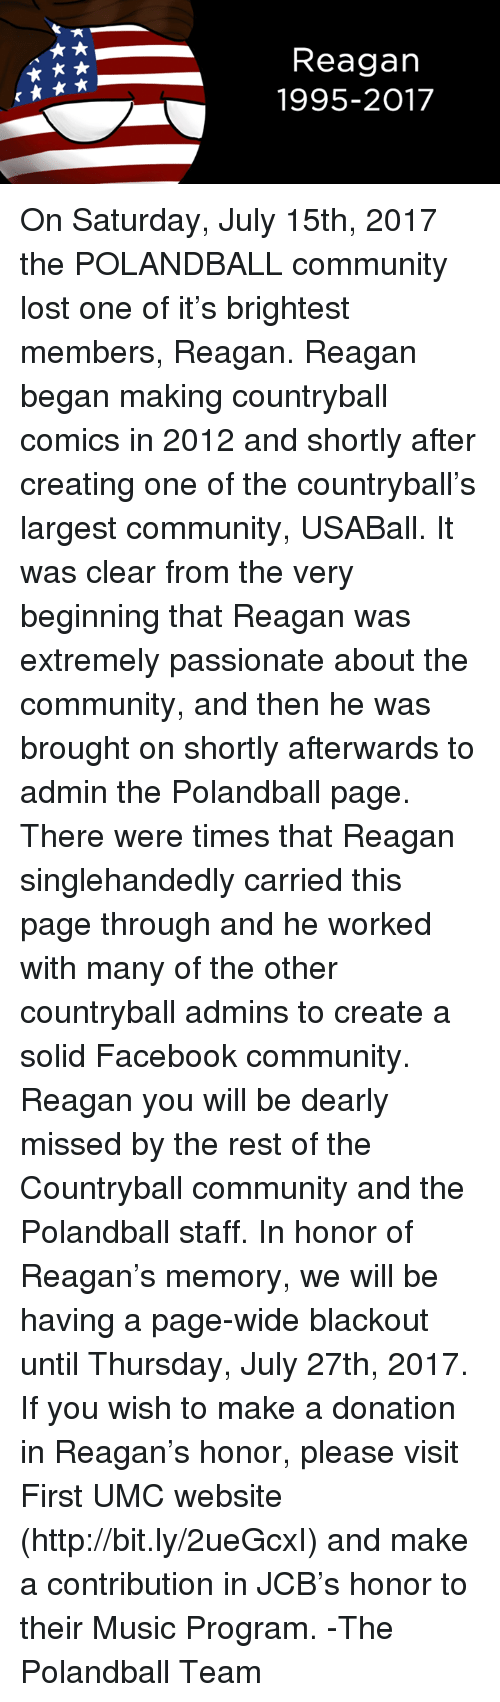 Community, Facebook, and Music: Reagan  1995-2017 On Saturday, July 15th, 2017 the POLANDBALL community lost one of it's brightest members, Reagan.   Reagan began making countryball comics in 2012 and shortly after creating one of the countryball's largest community, USABall.  It was clear from the very beginning that Reagan was extremely passionate about the community, and then he was brought on shortly afterwards to admin the Polandball page. There were times that Reagan singlehandedly carried this page through and he worked with many of the other countryball admins to create a solid Facebook community.   Reagan you will be dearly missed by the rest of the Countryball community and the Polandball staff.   In honor of Reagan's memory, we will be having a page-wide blackout until Thursday, July 27th, 2017.  If you wish to make a donation in Reagan's honor, please visit First UMC website (http://bit.ly/2ueGcxI) and make a contribution in JCB's honor to their Music Program.    -The Polandball Team